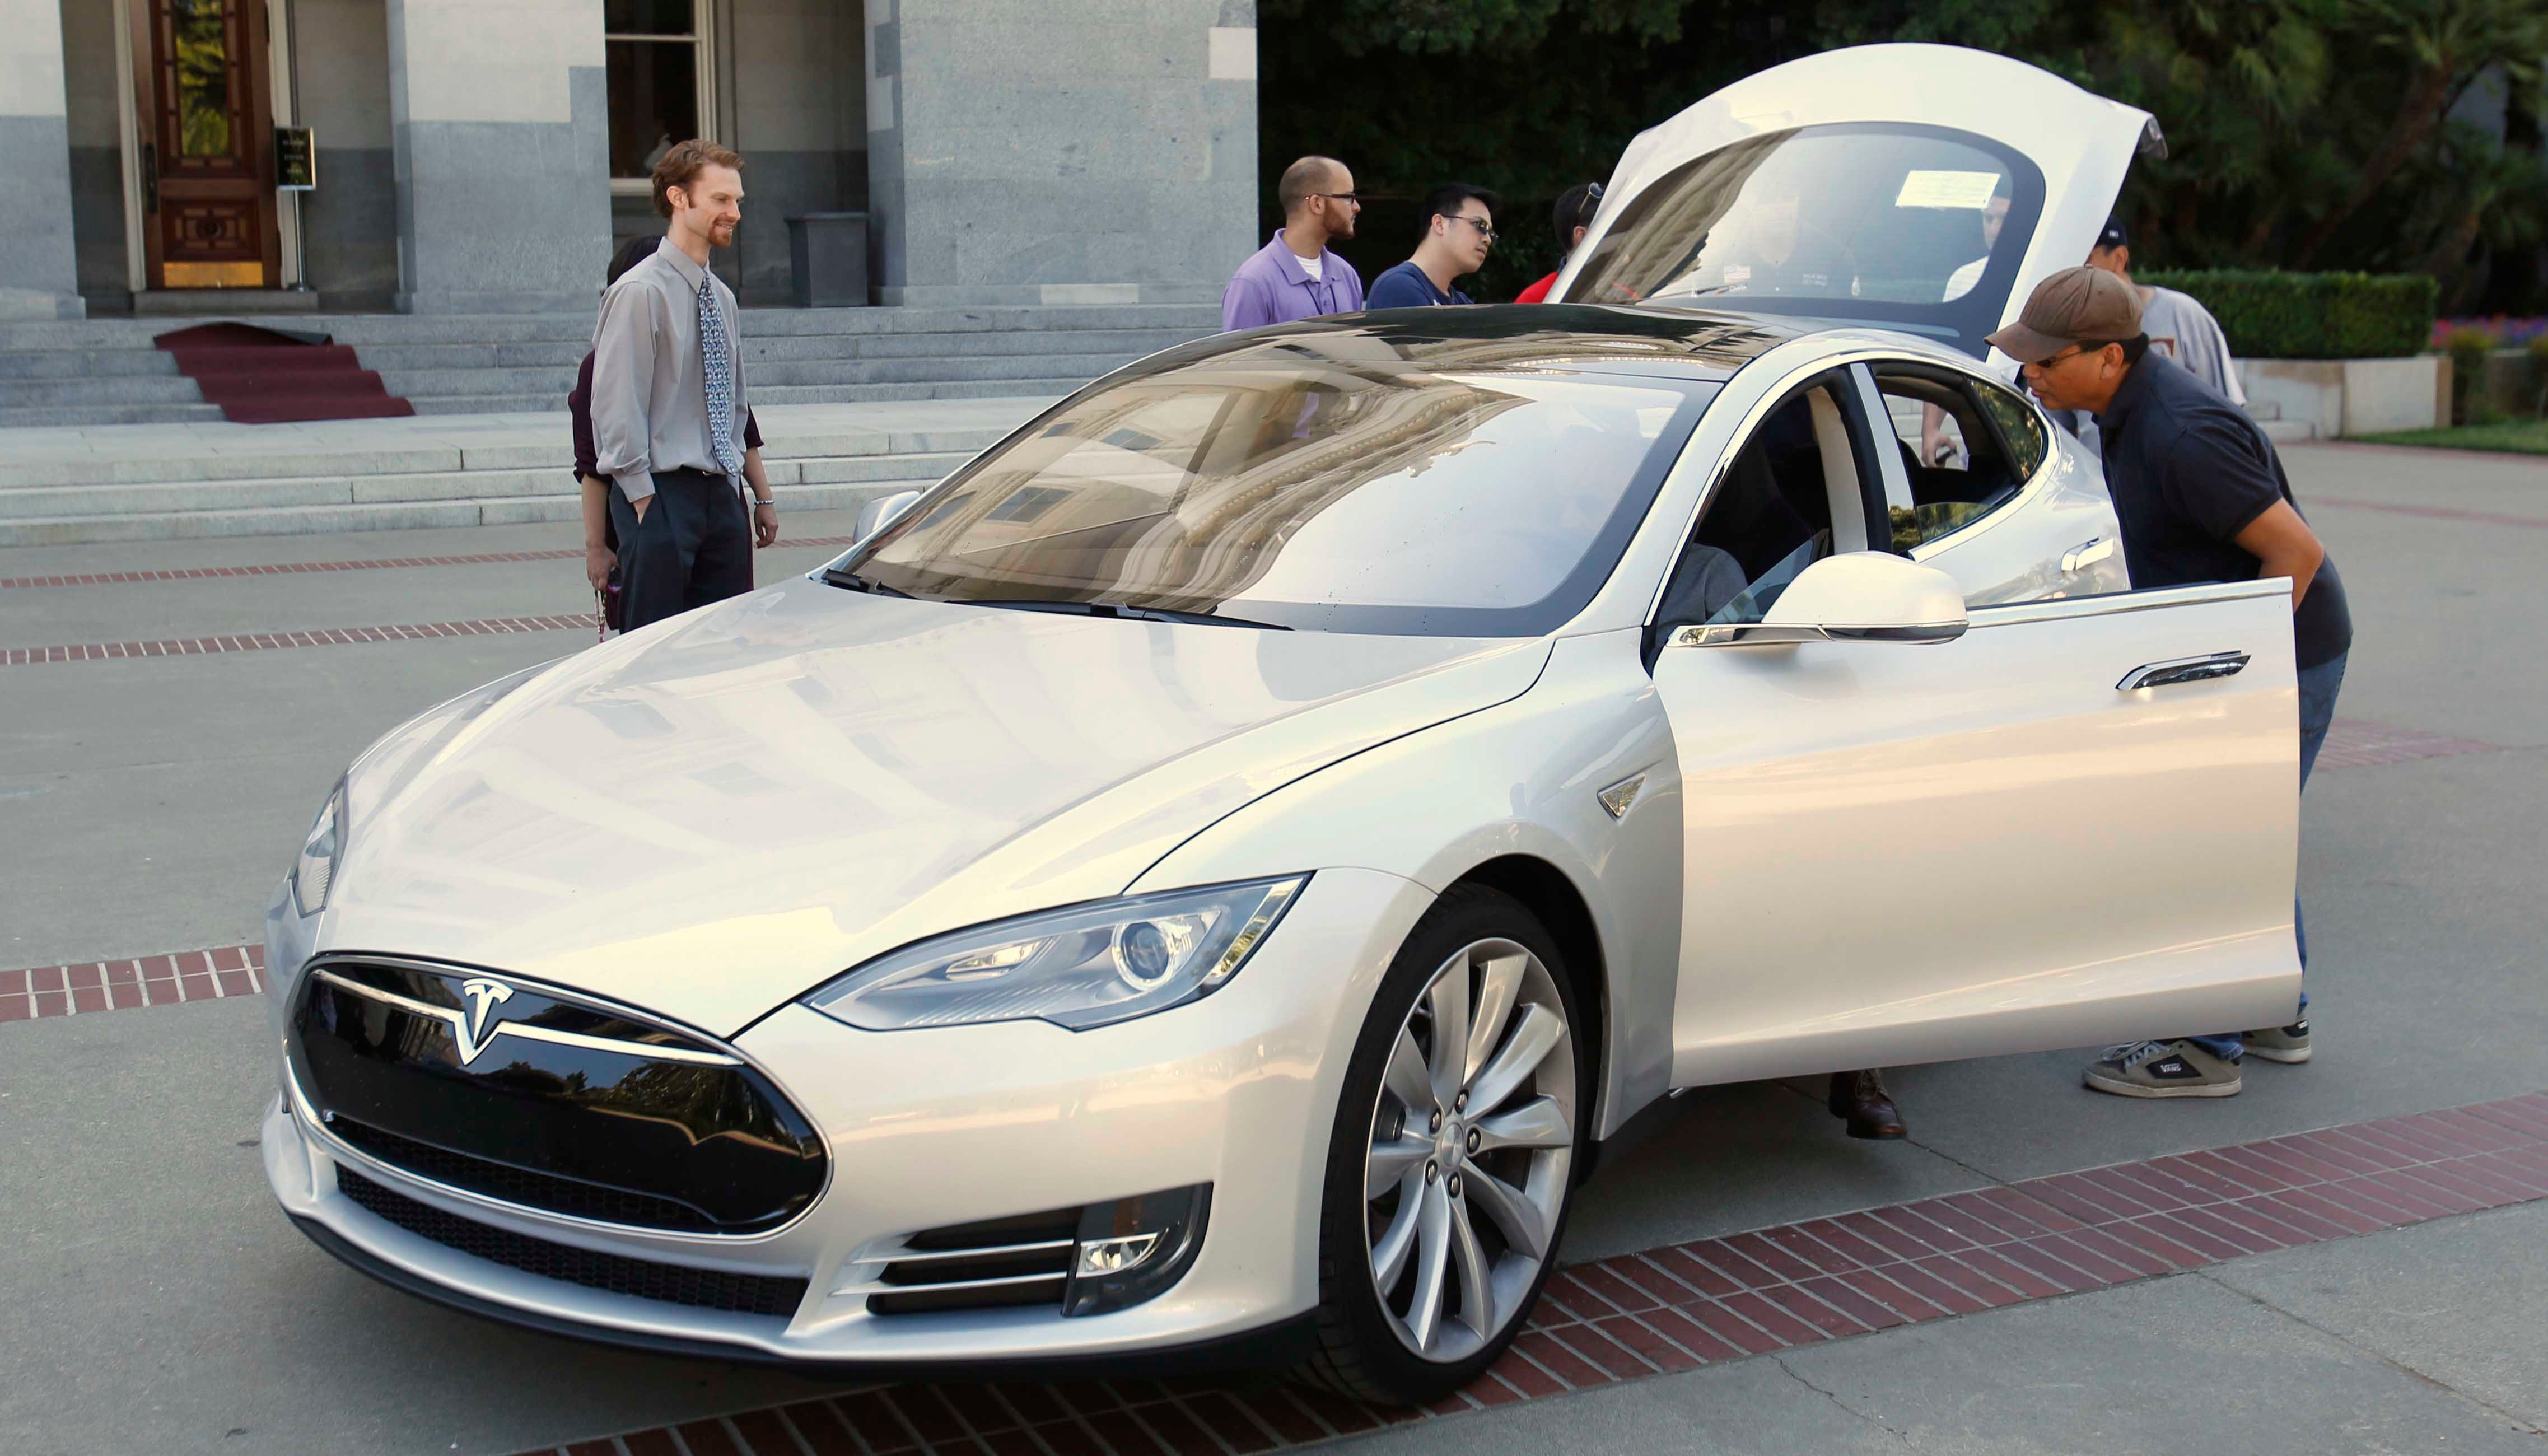 In this June 18, 2013 photo, visitors to Sacramento, CA, inspect the Tesla Motors Model S electric sedan. Tesla is recalling 123,000 Model S sedans built before April 2016 because of a power steering issue. (Source: AP Photo/Rich Pedroncelli, file)